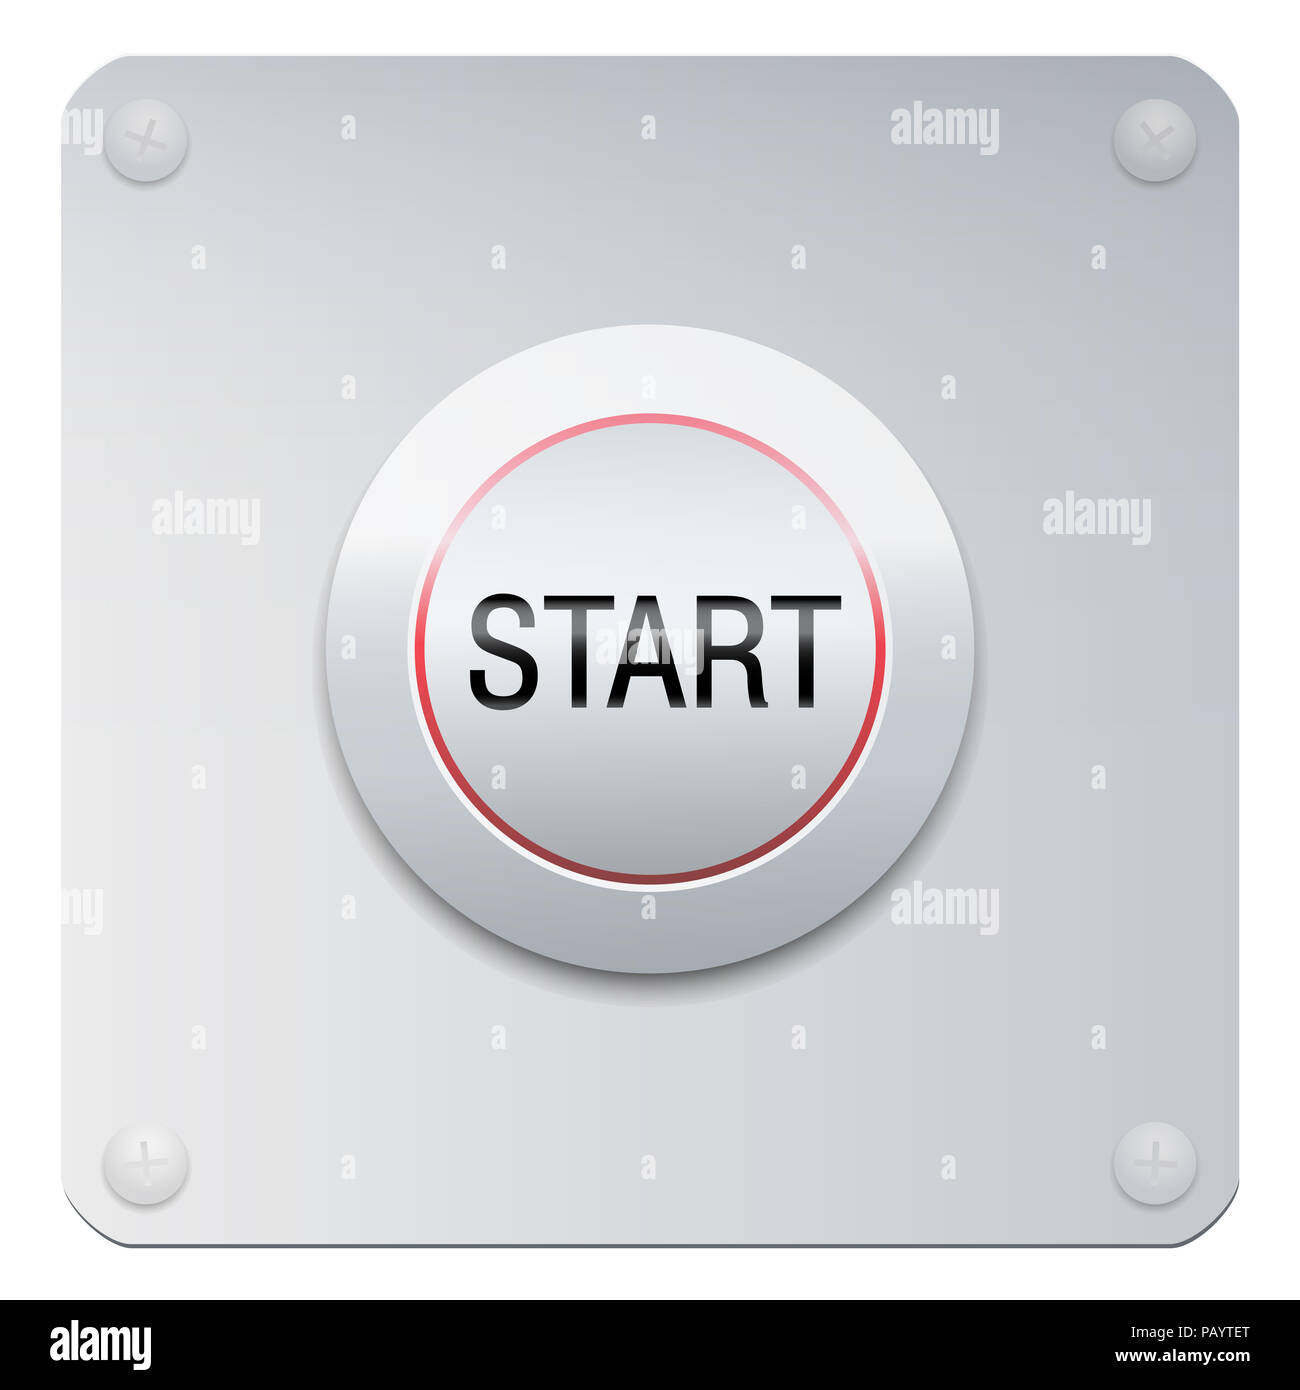 Start button on a chrome panel to start machines, gadgets instruments, but also a new project, adventure, lifestyle, relationship or other beginnings. - Stock Image